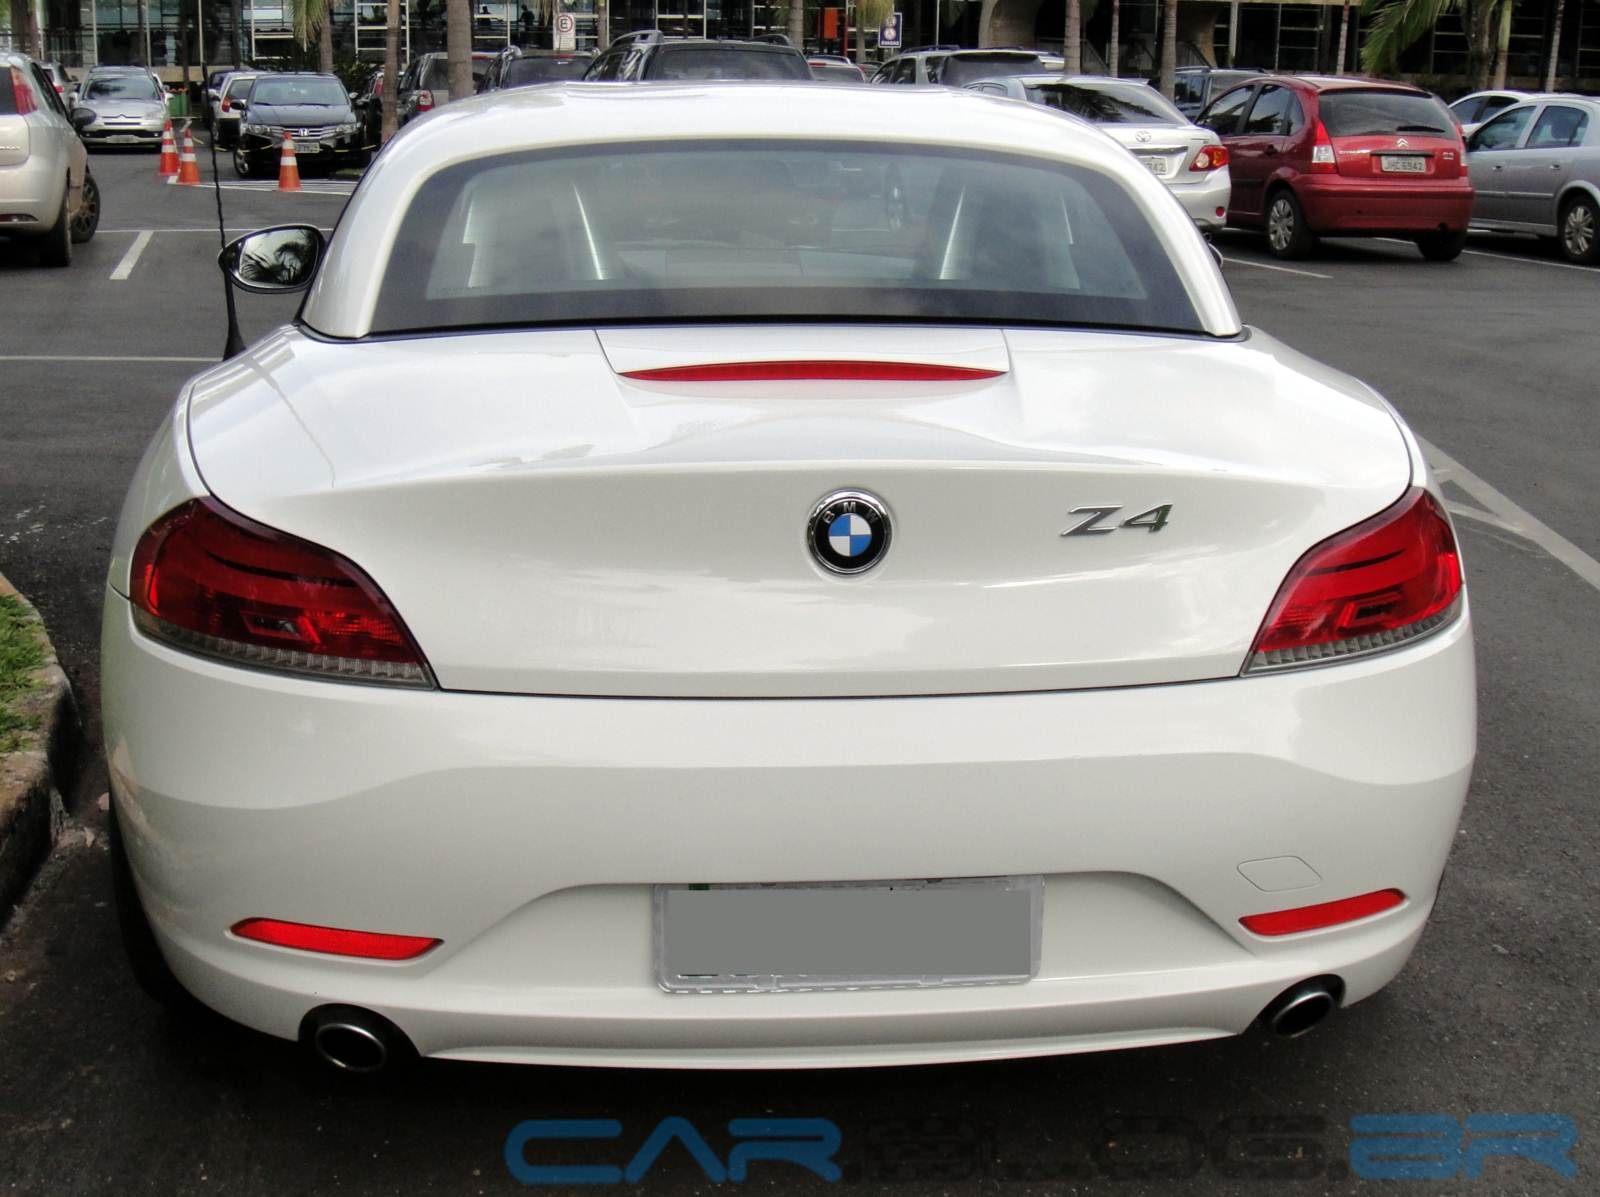 Bmw Z4 Sdrive35i Fotos Pre 231 O E Especifica 231 245 Es T 233 Cnicas Car Blog Br